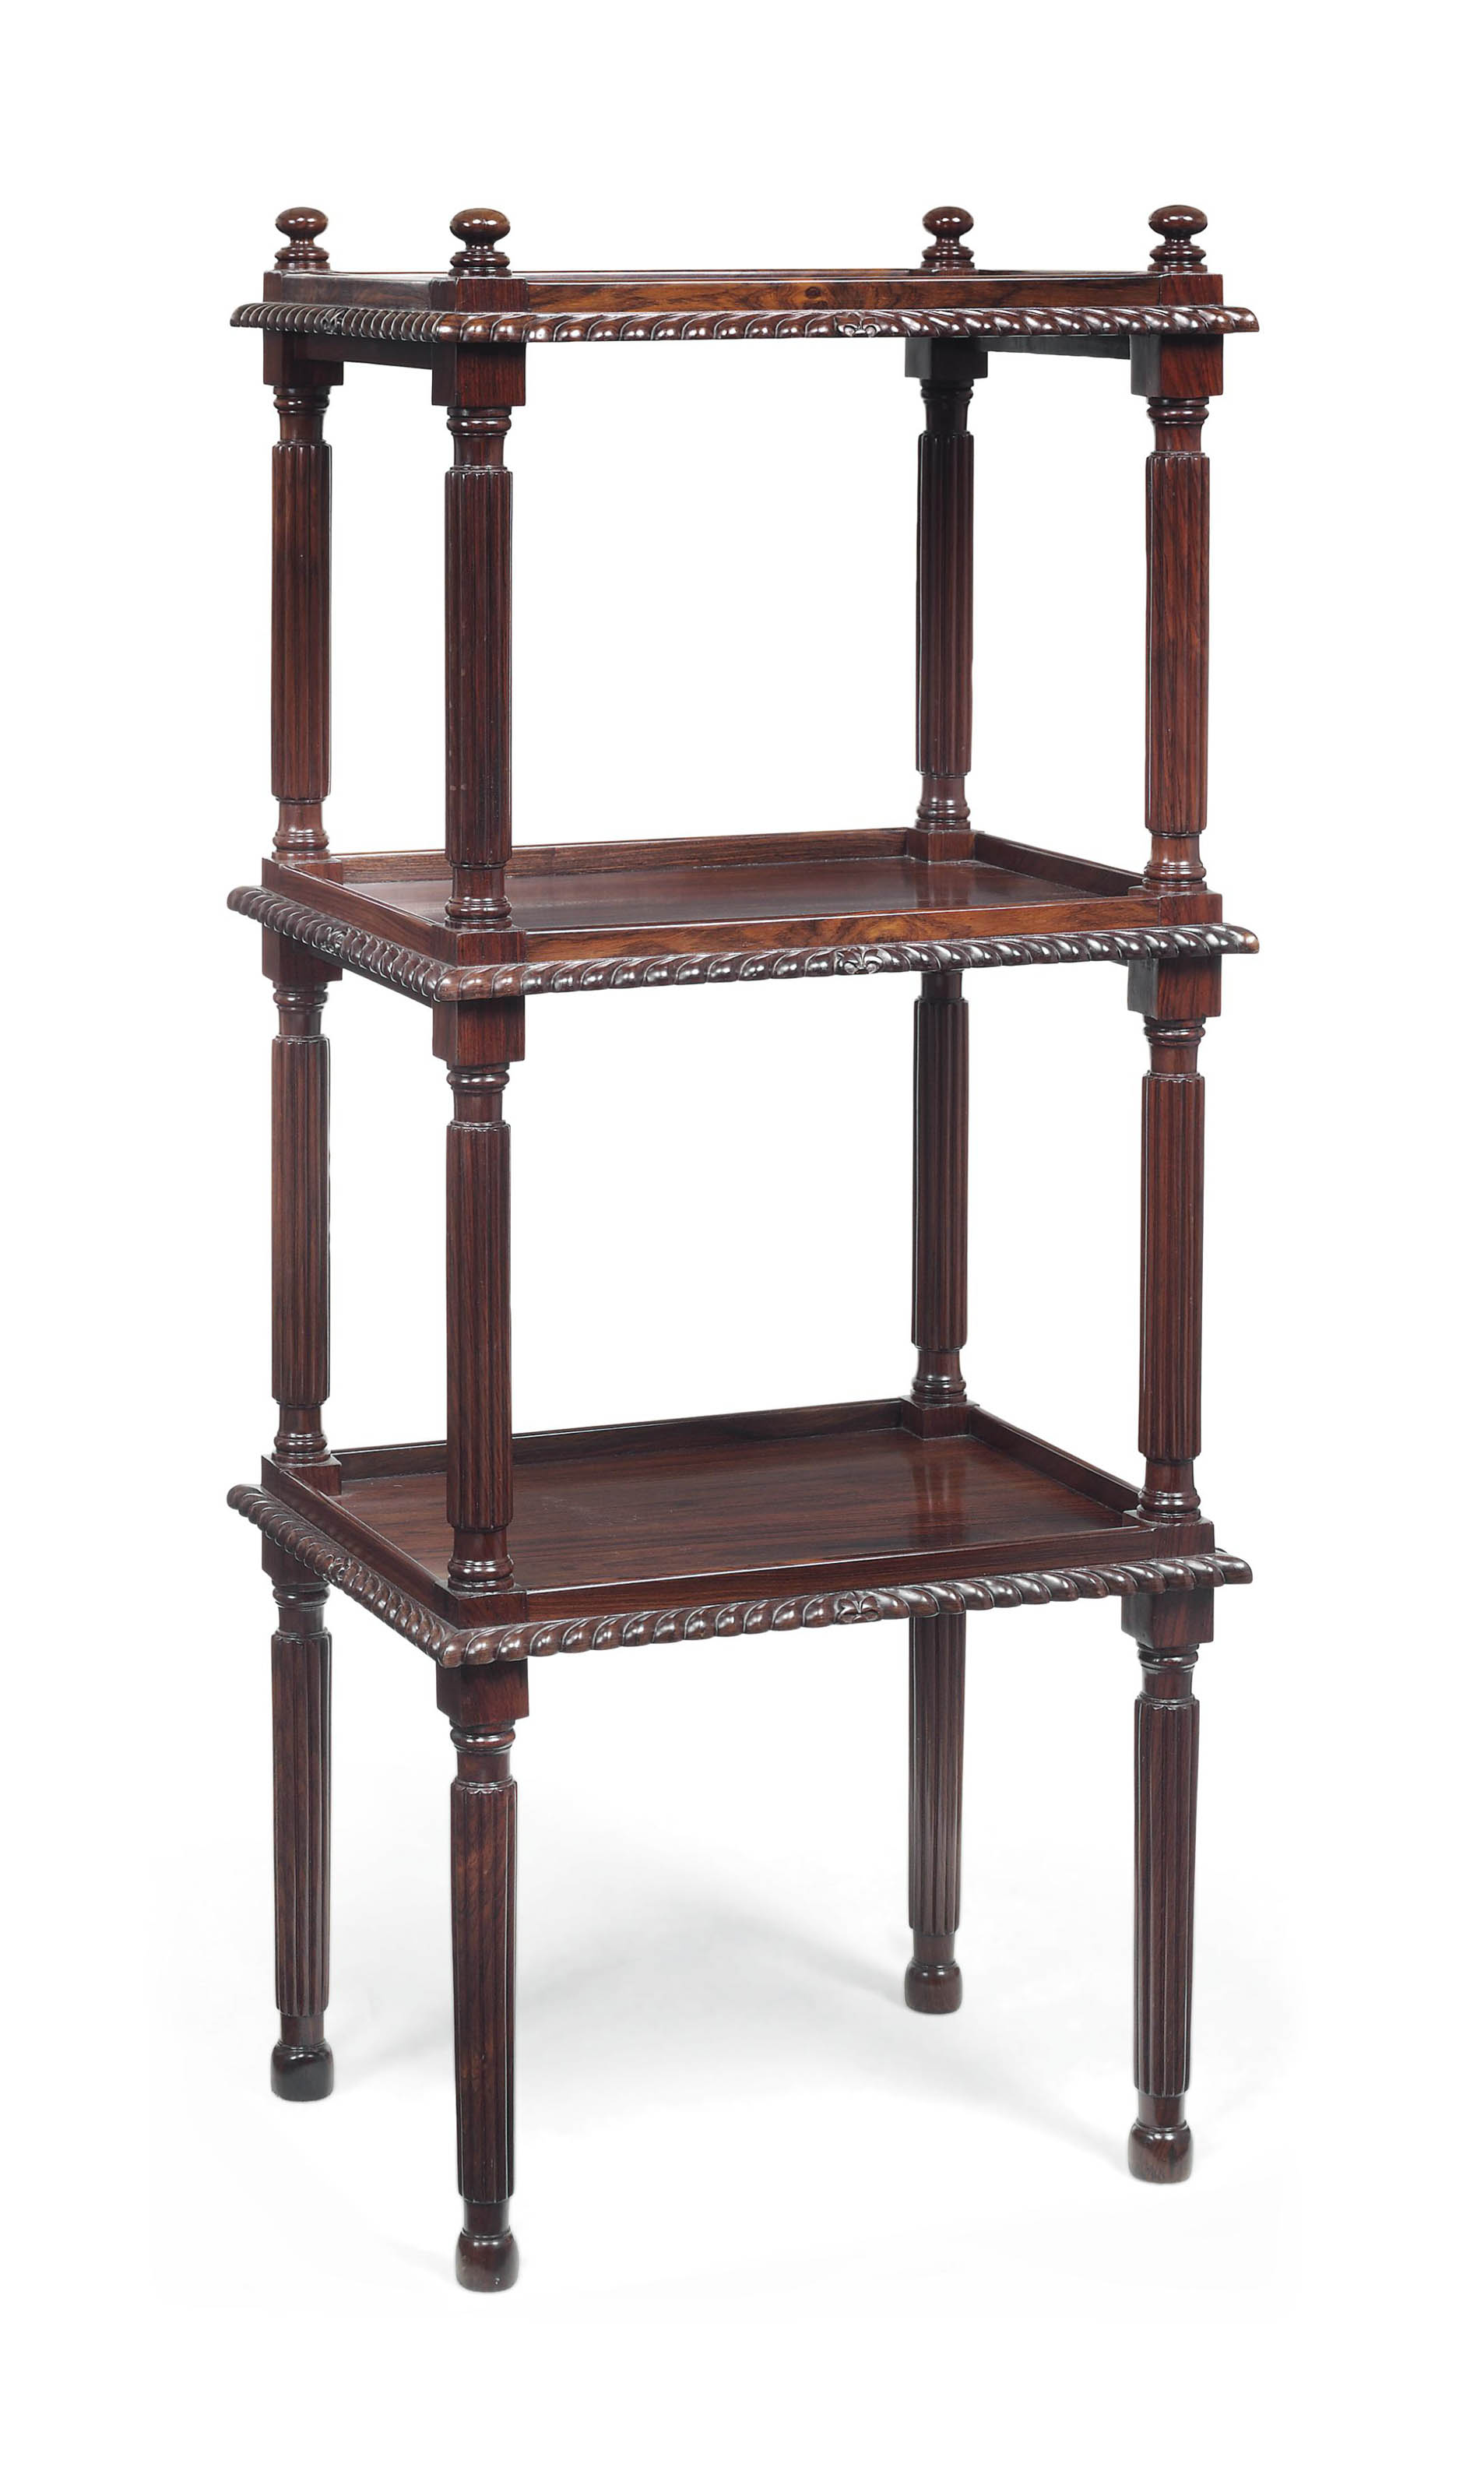 AN ANGLO-INDIAN ROSEWOOD THREE-TIER ETAGERE